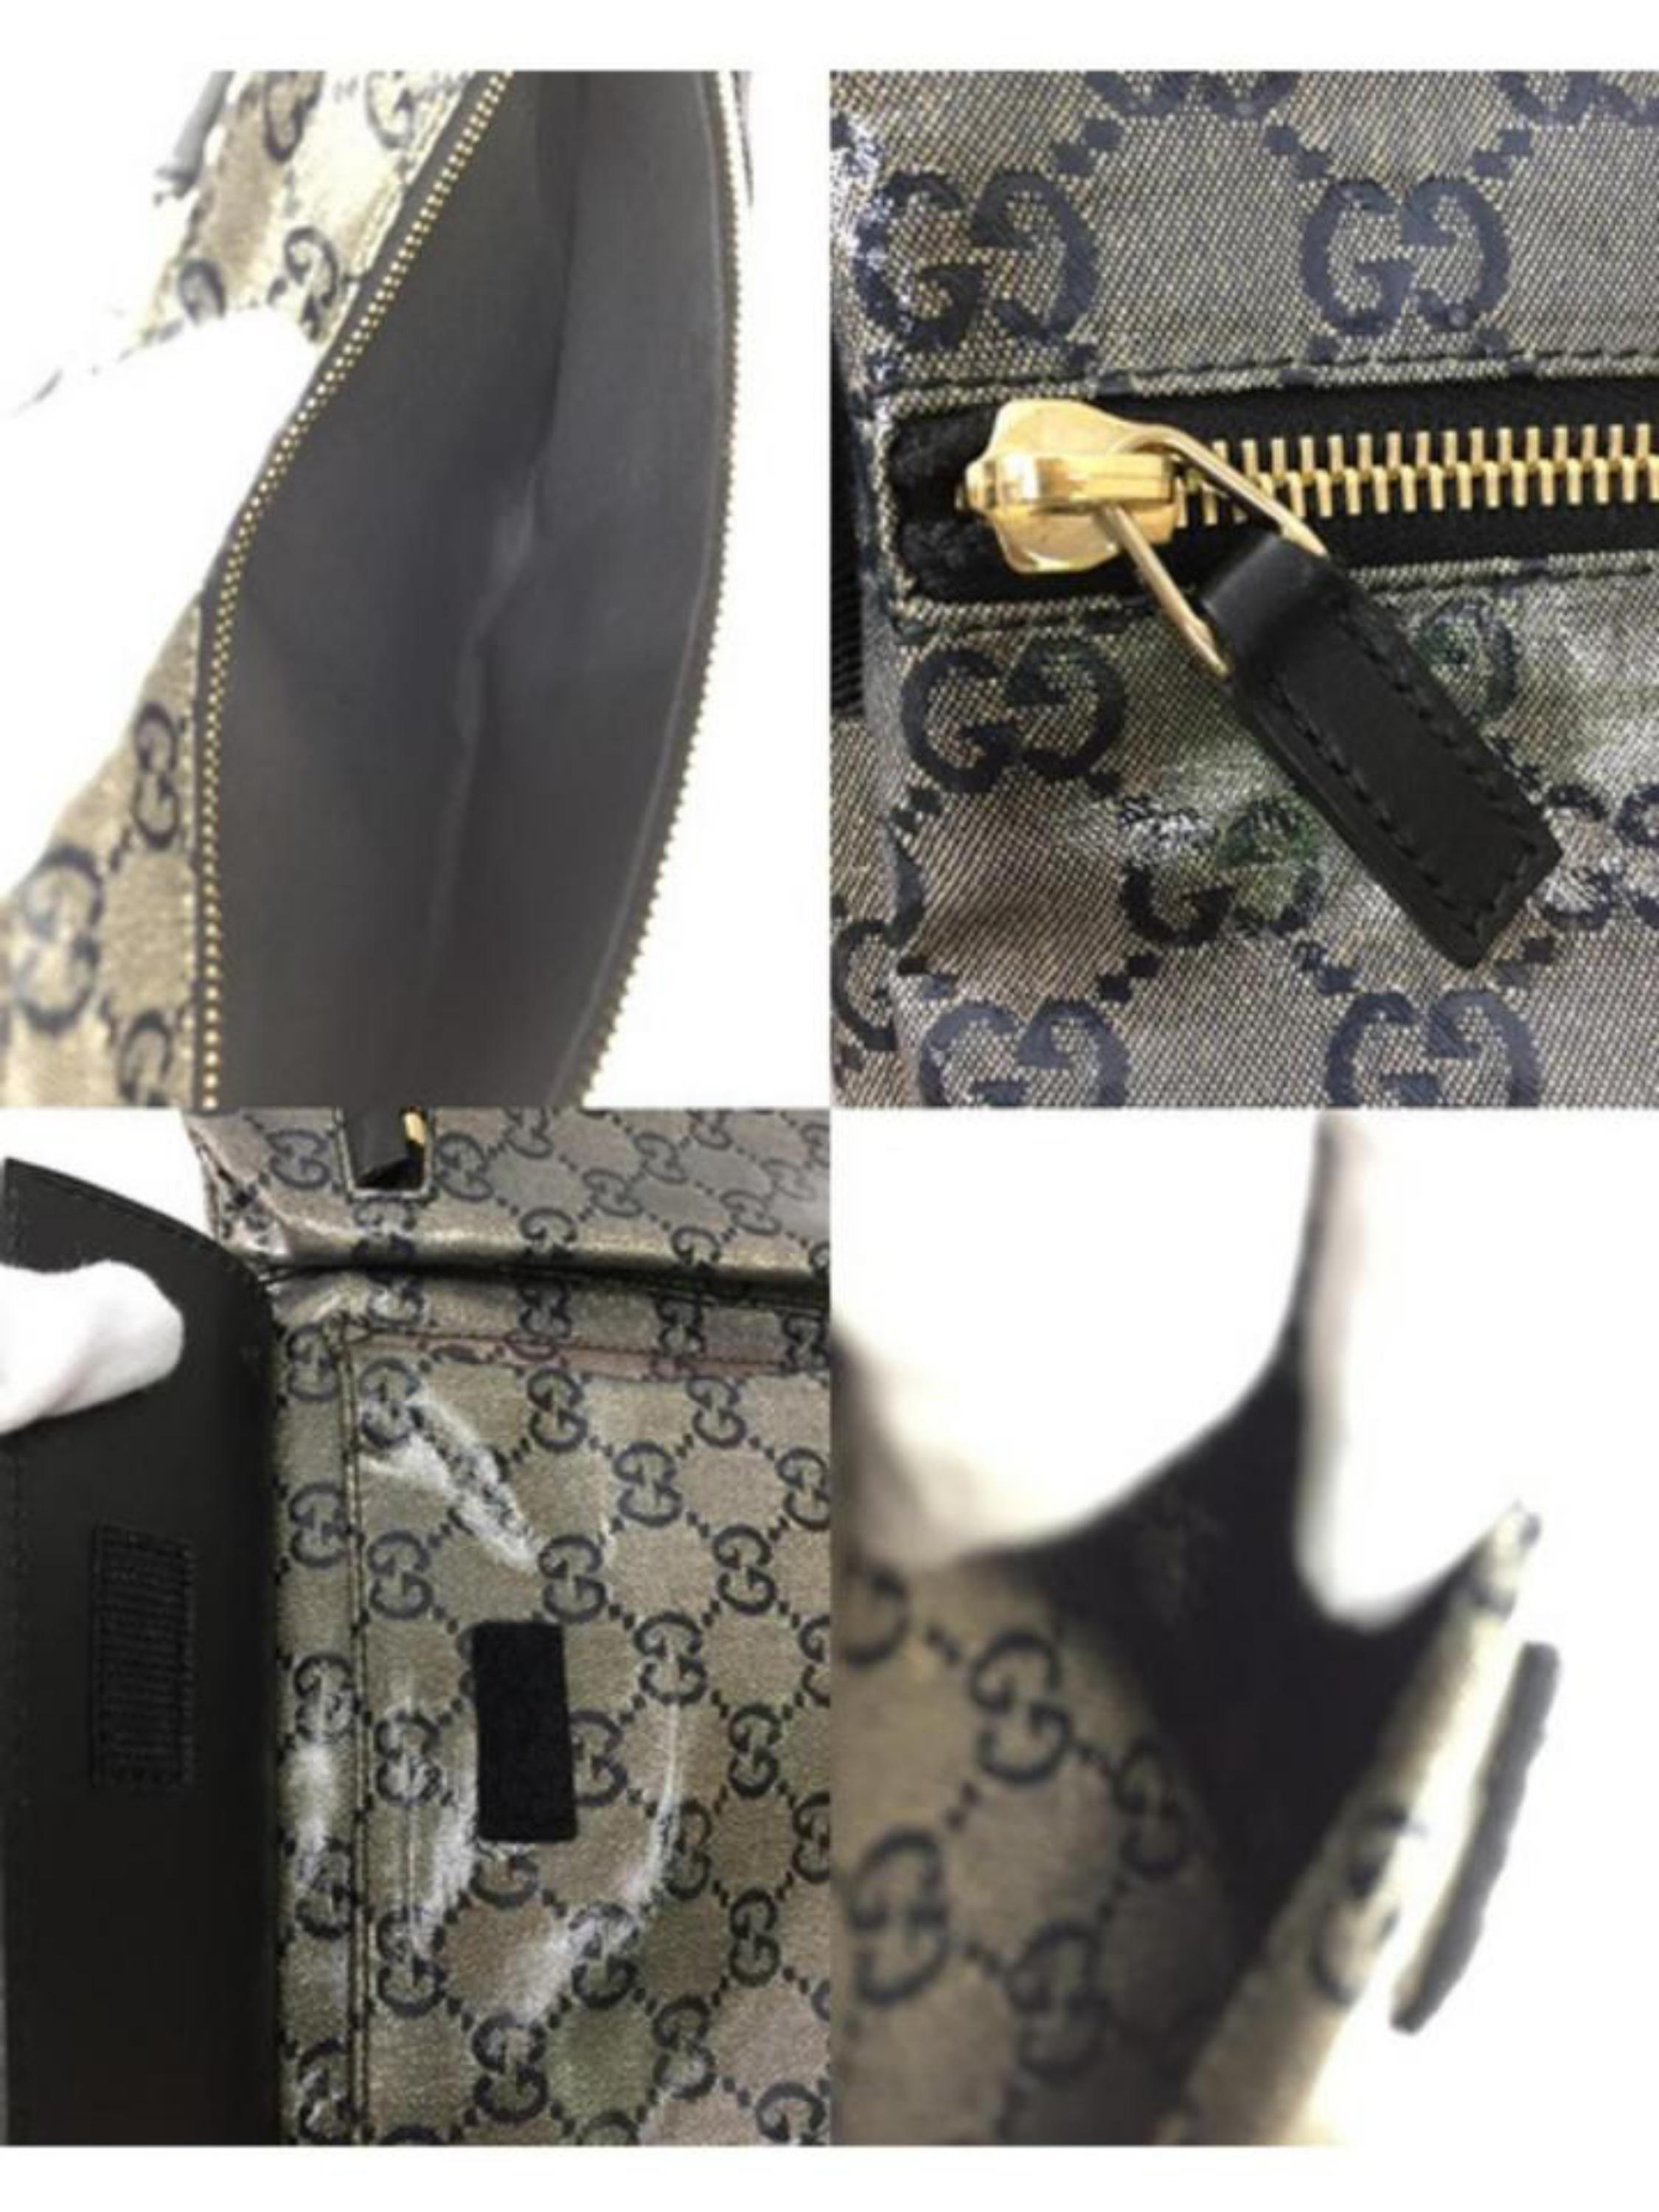 6be63a7d70c1 Gucci Crystal Monogram Gg Belt Fanny Pack 228312 Black Coated Canvas Cross  Body For Sale at 1stdibs